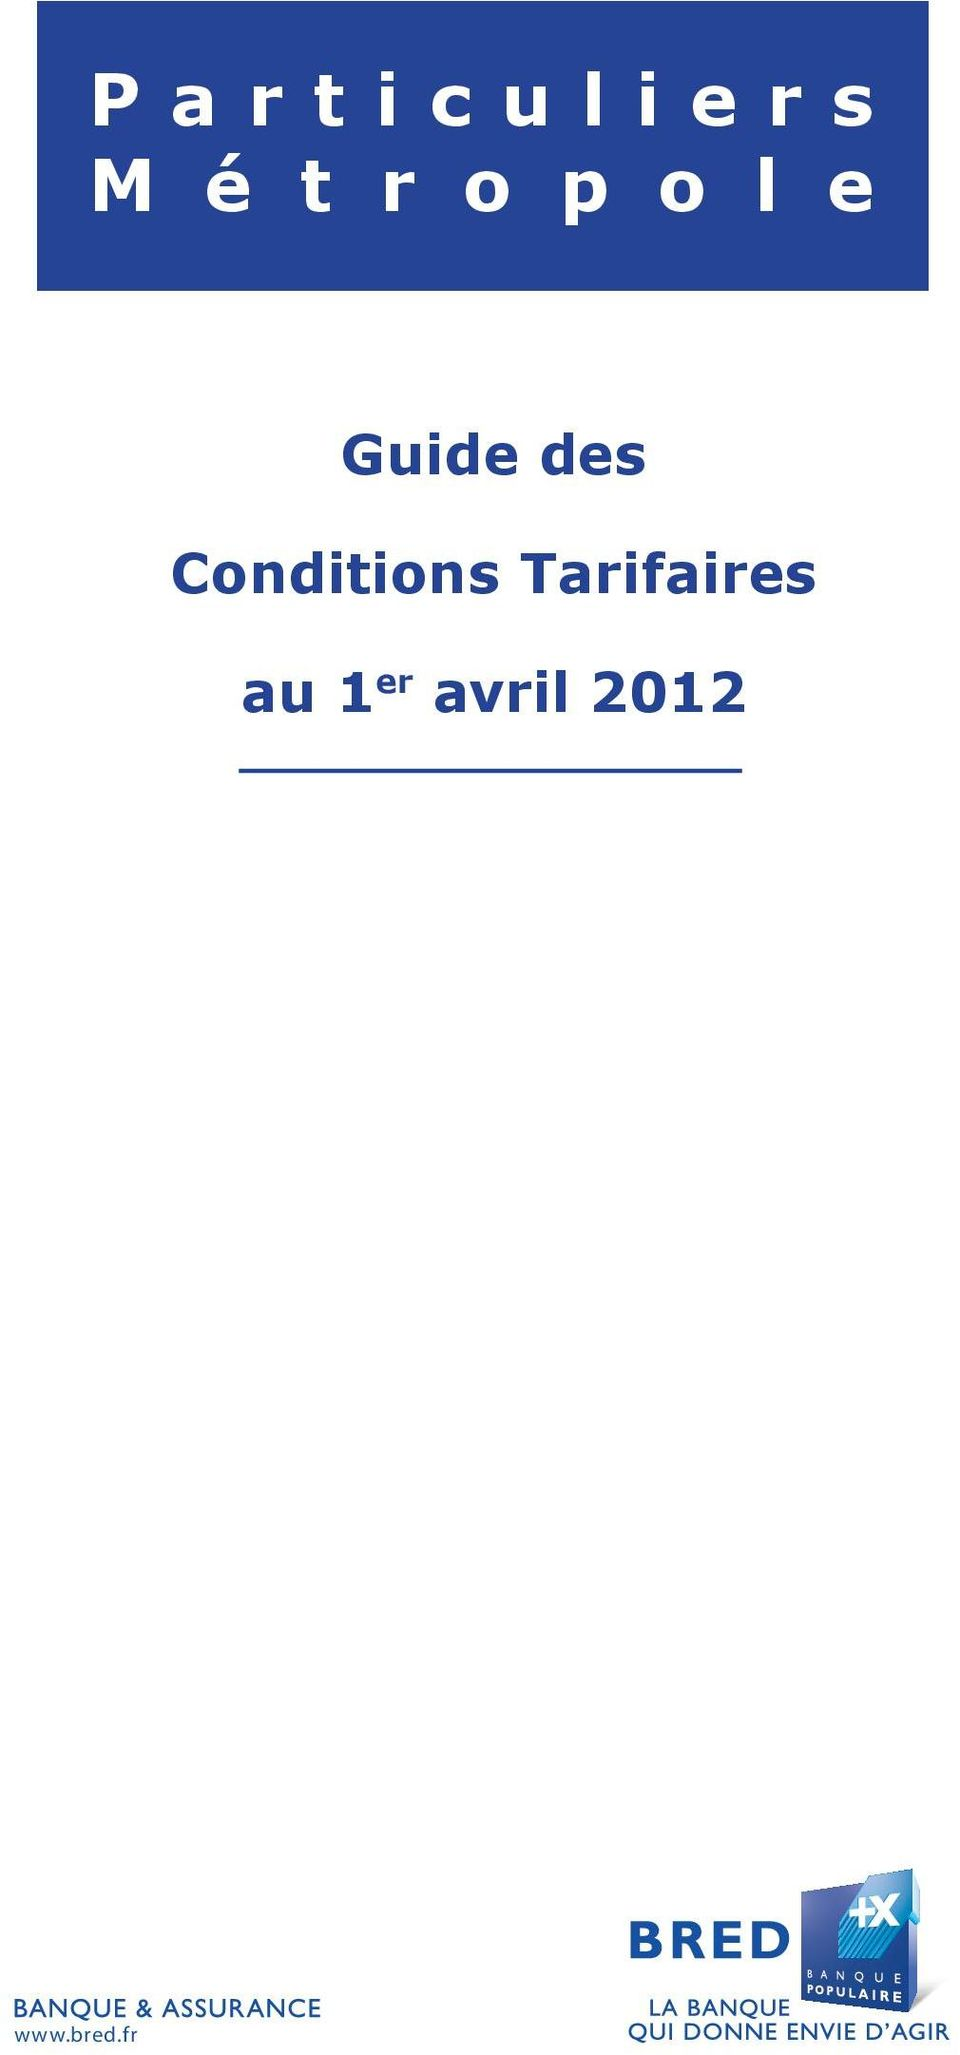 Conditions Tarifaires au